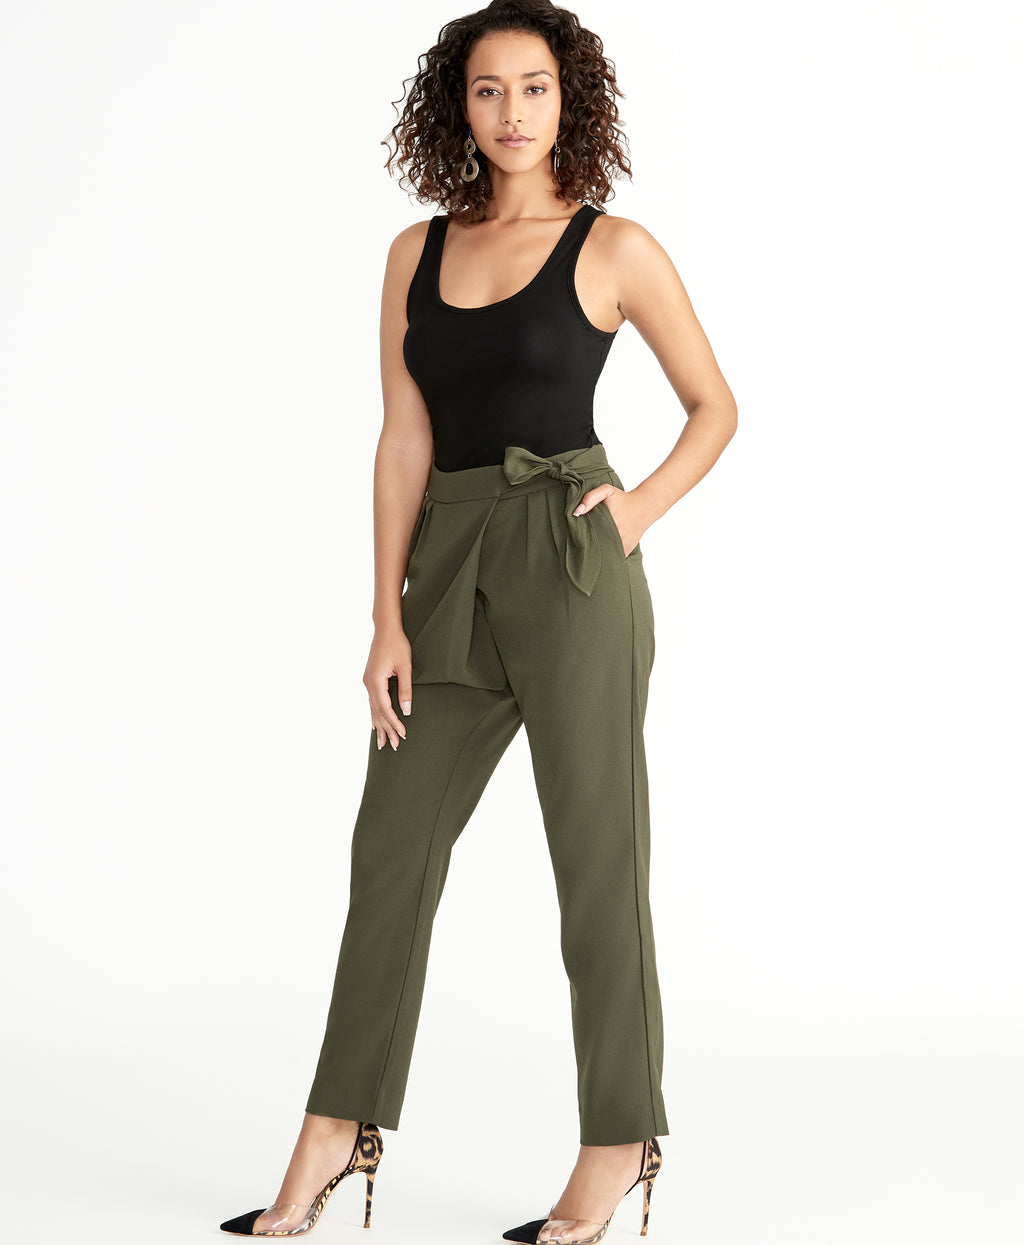 SHELLY TIE WAIST PANT | ARMY GREEN